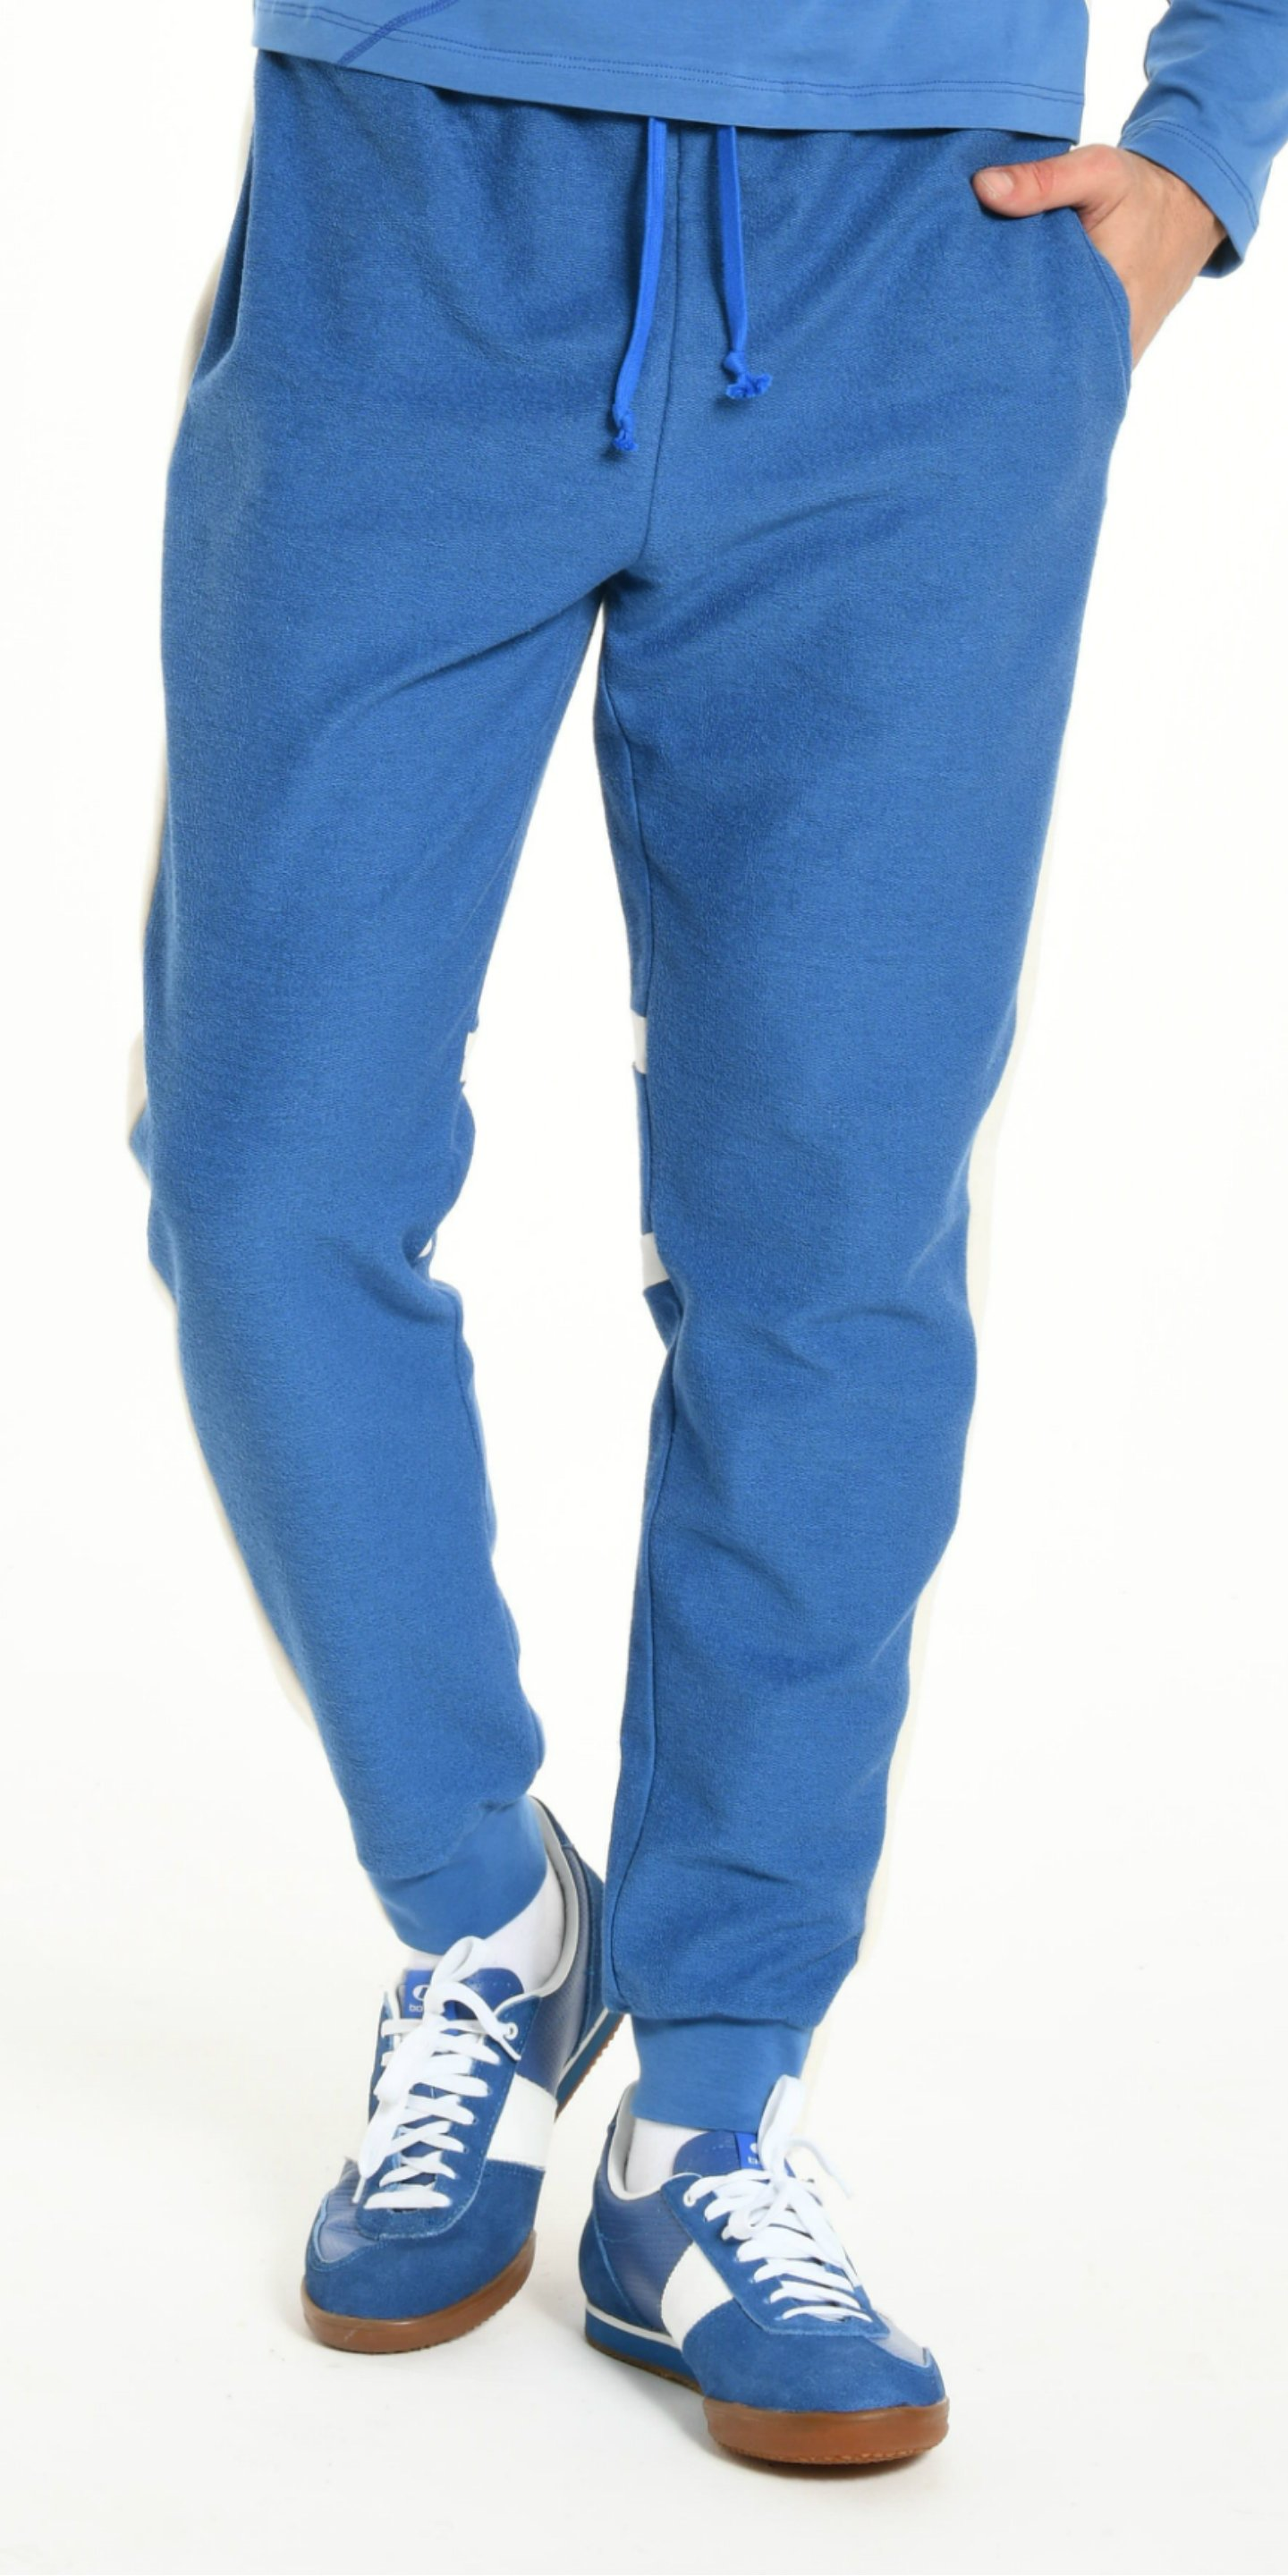 JOGGING PANTS BLUE WITH OFFWHITE STRIP from BEARD & FRINGE